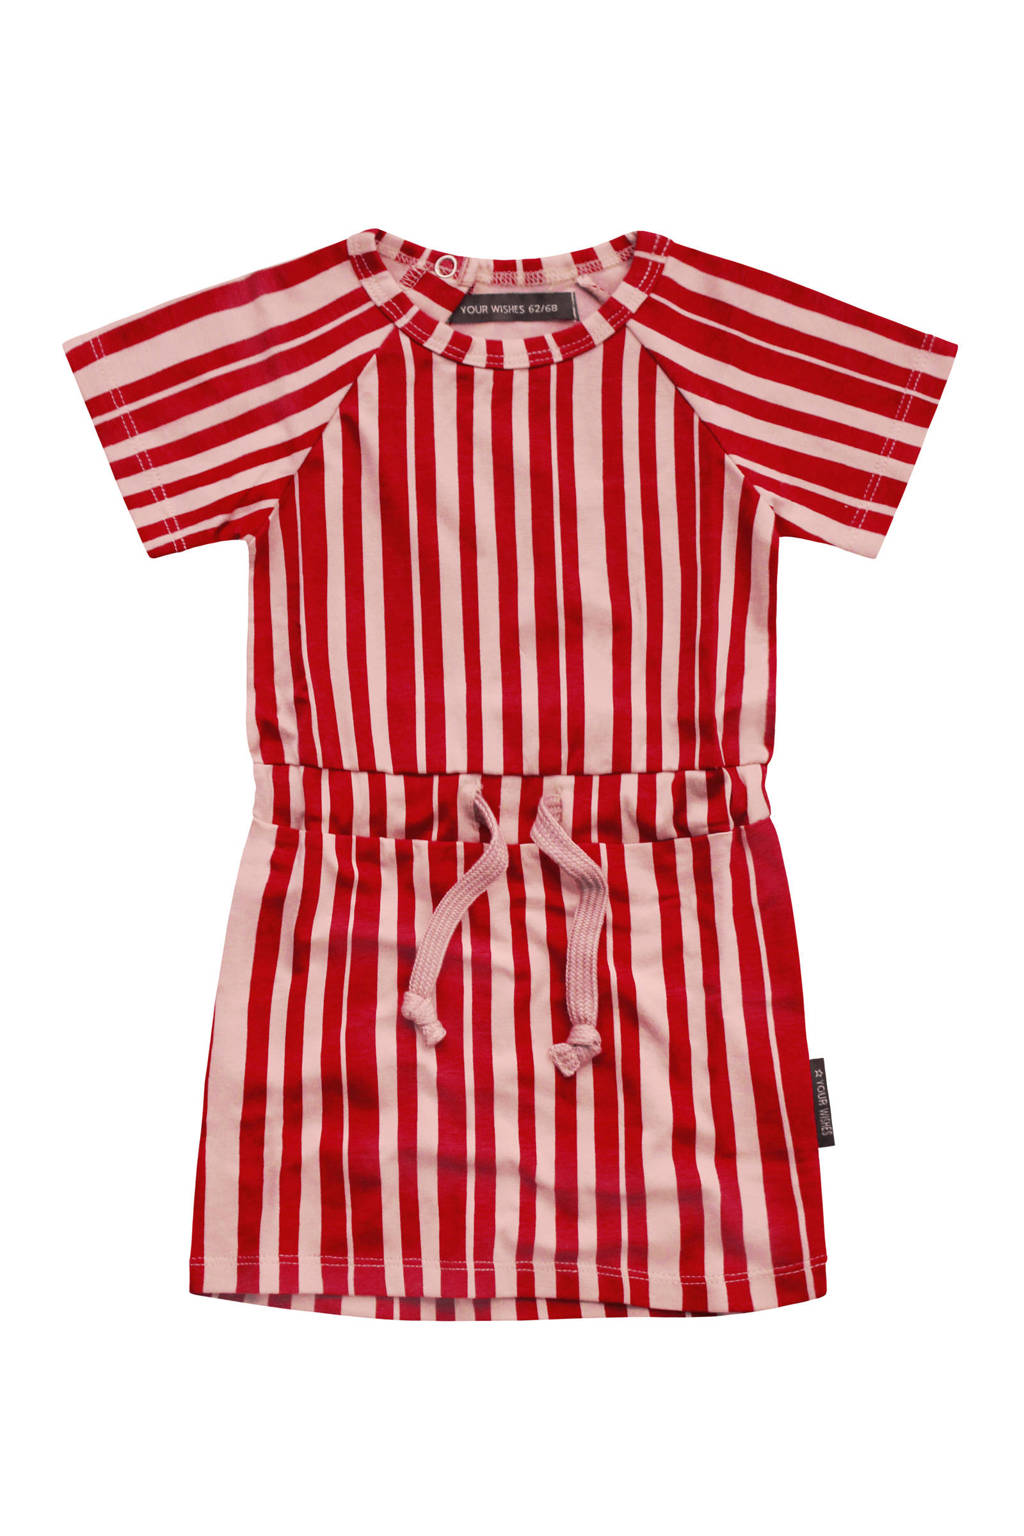 Your Wishes gestreepte sweatjurk Pink Stripes rood/rozee, Rood/rozee